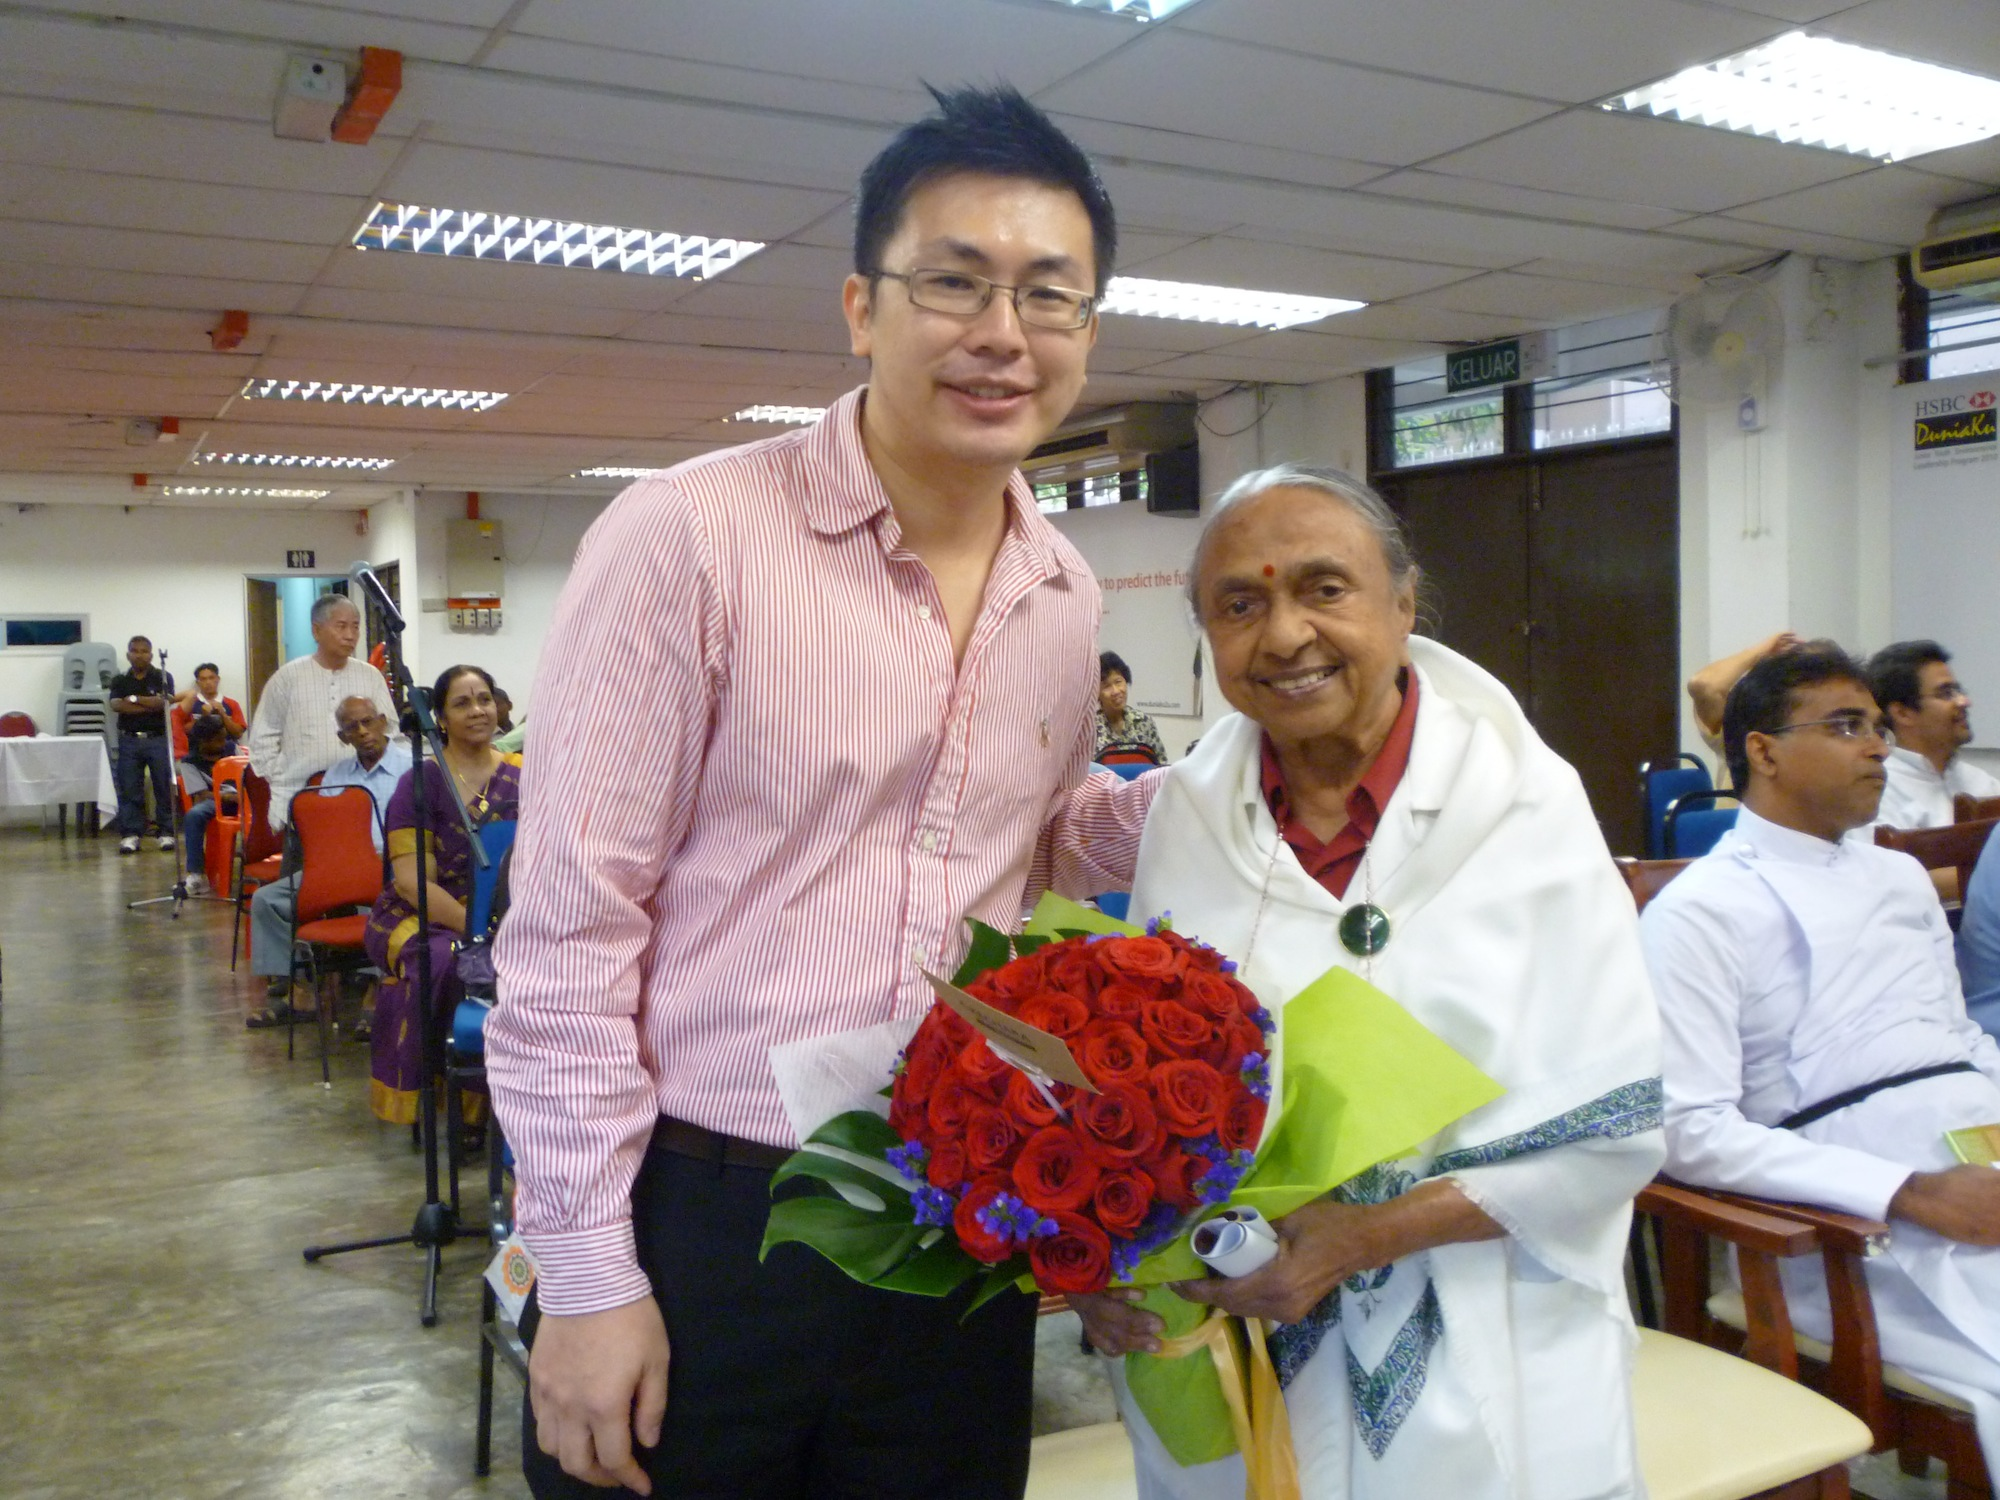 Presenting a bouquet of roses on behalf of Rinpoche to Mother Mangalam